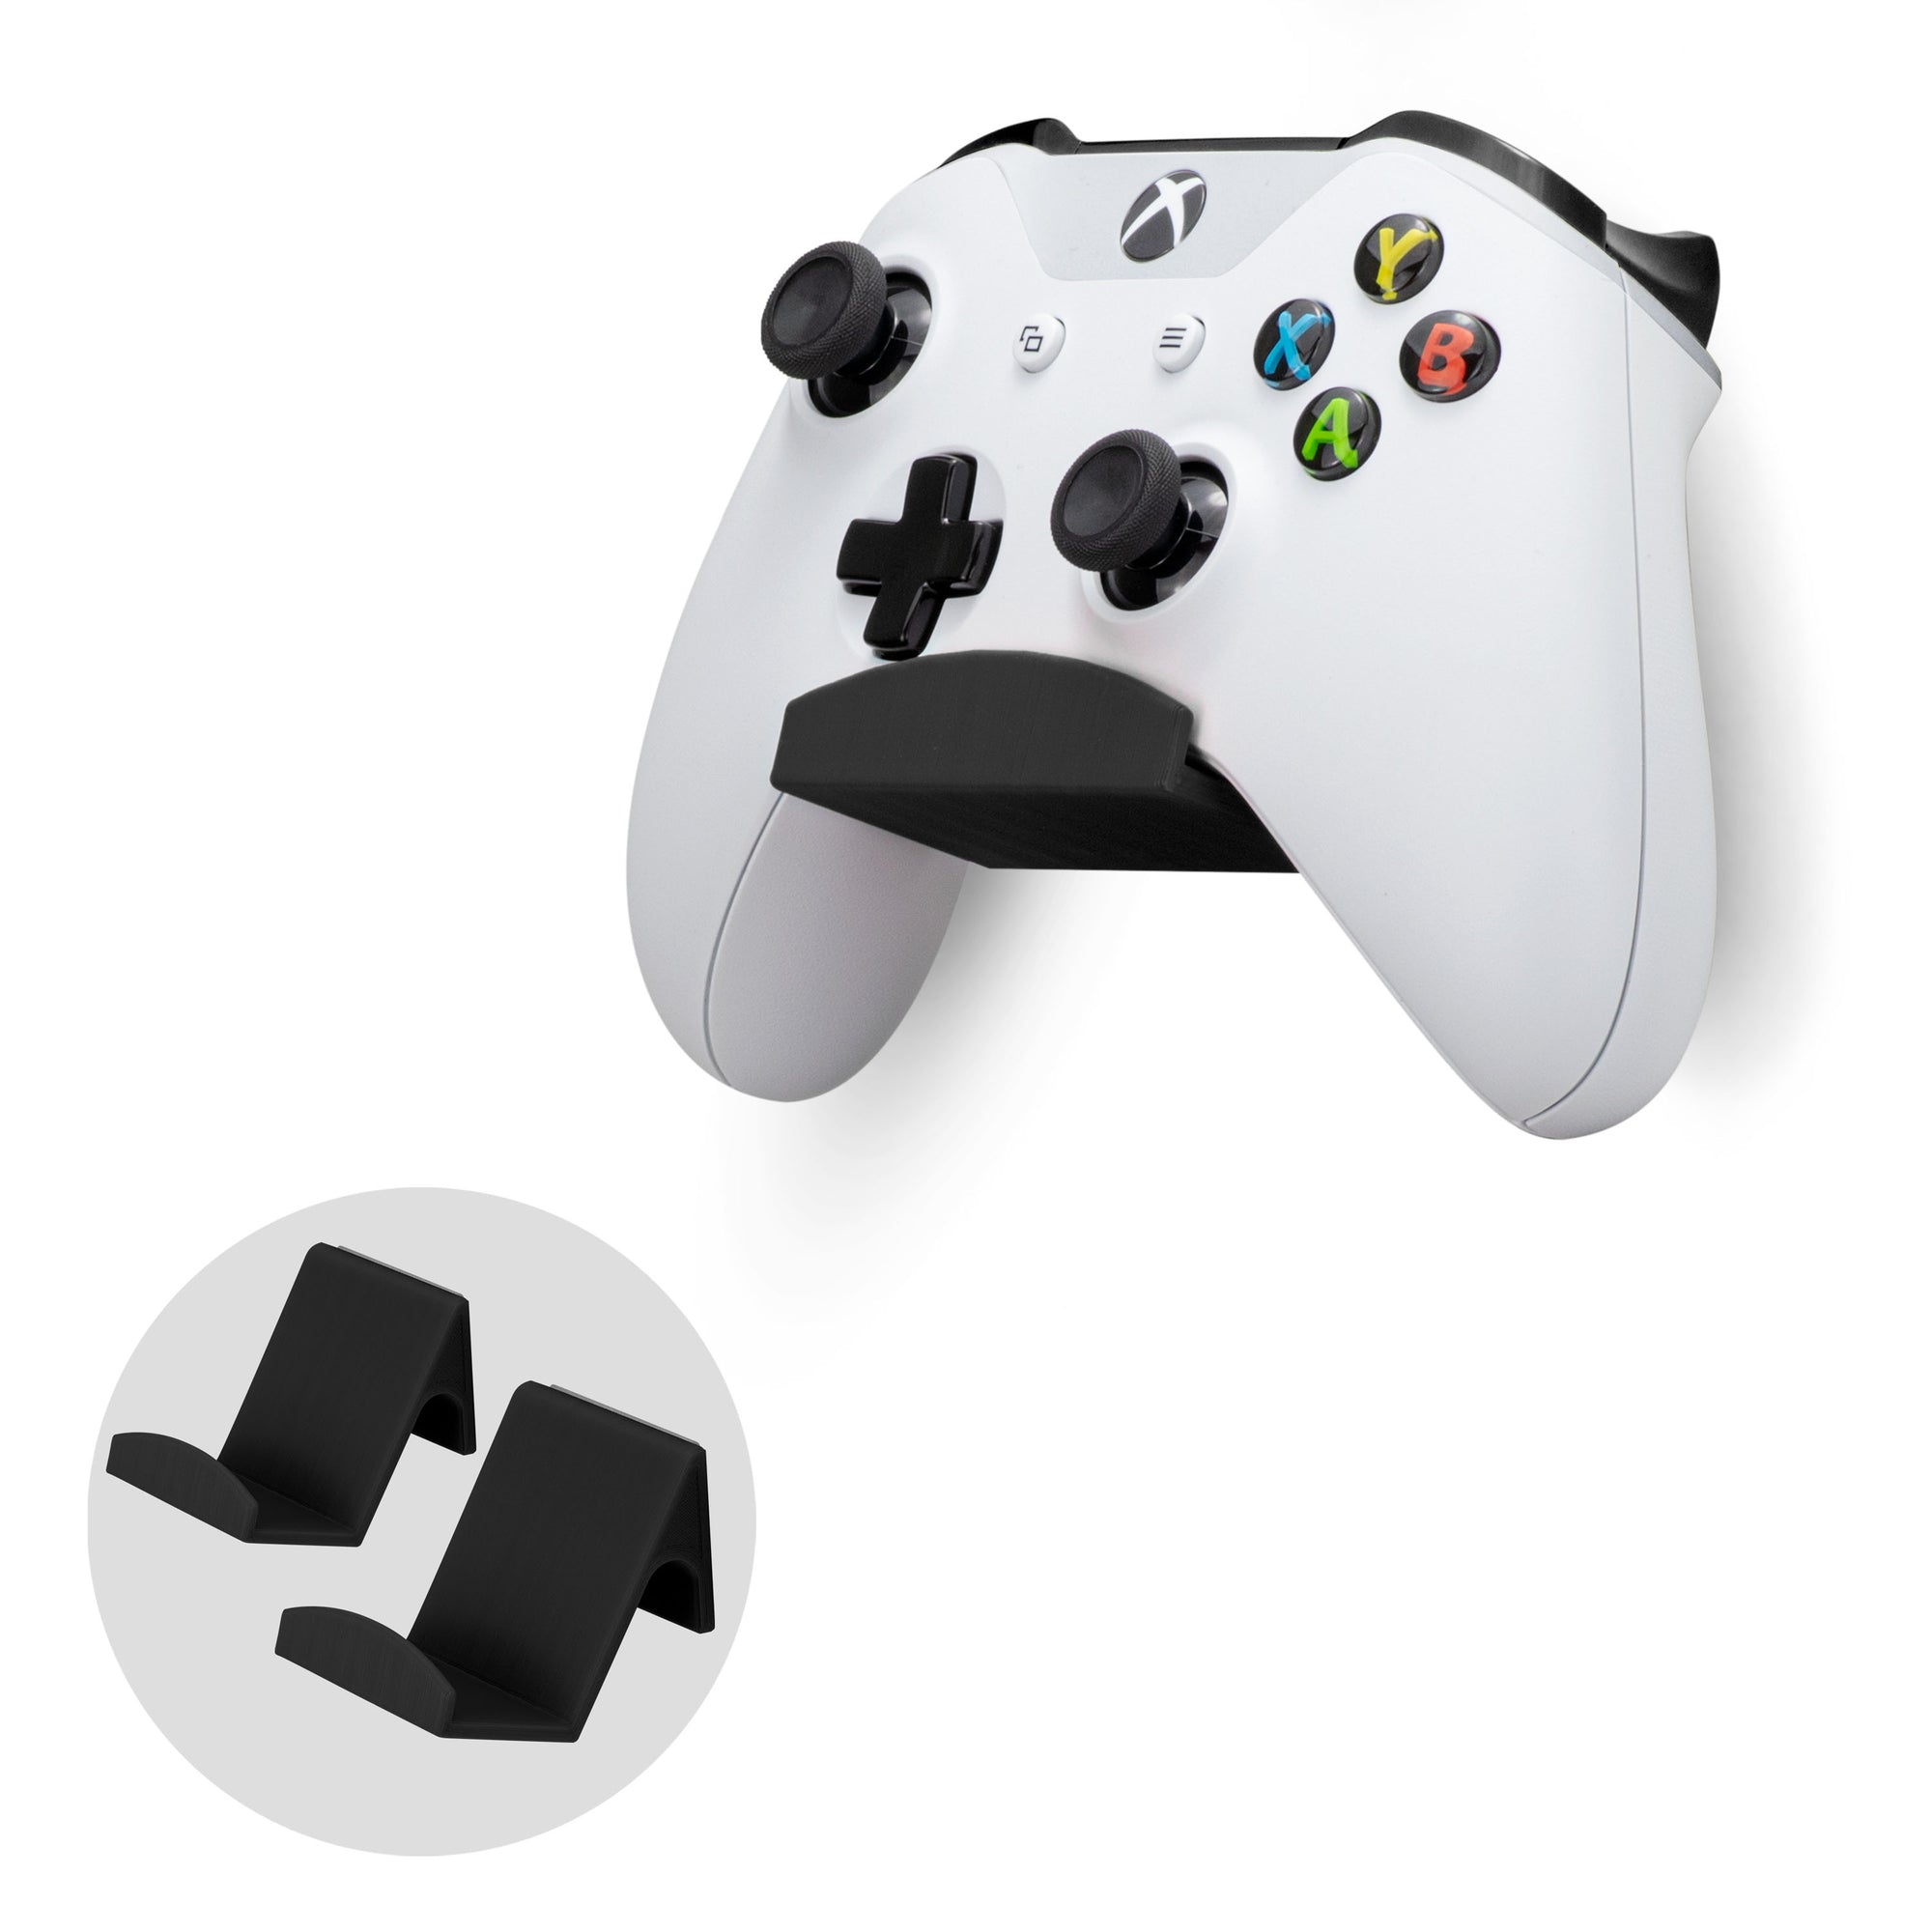 Universal Game Controller Wall Mount Hanger (UGC1) for XBOX, Playstation, PC & More - 2 Pack